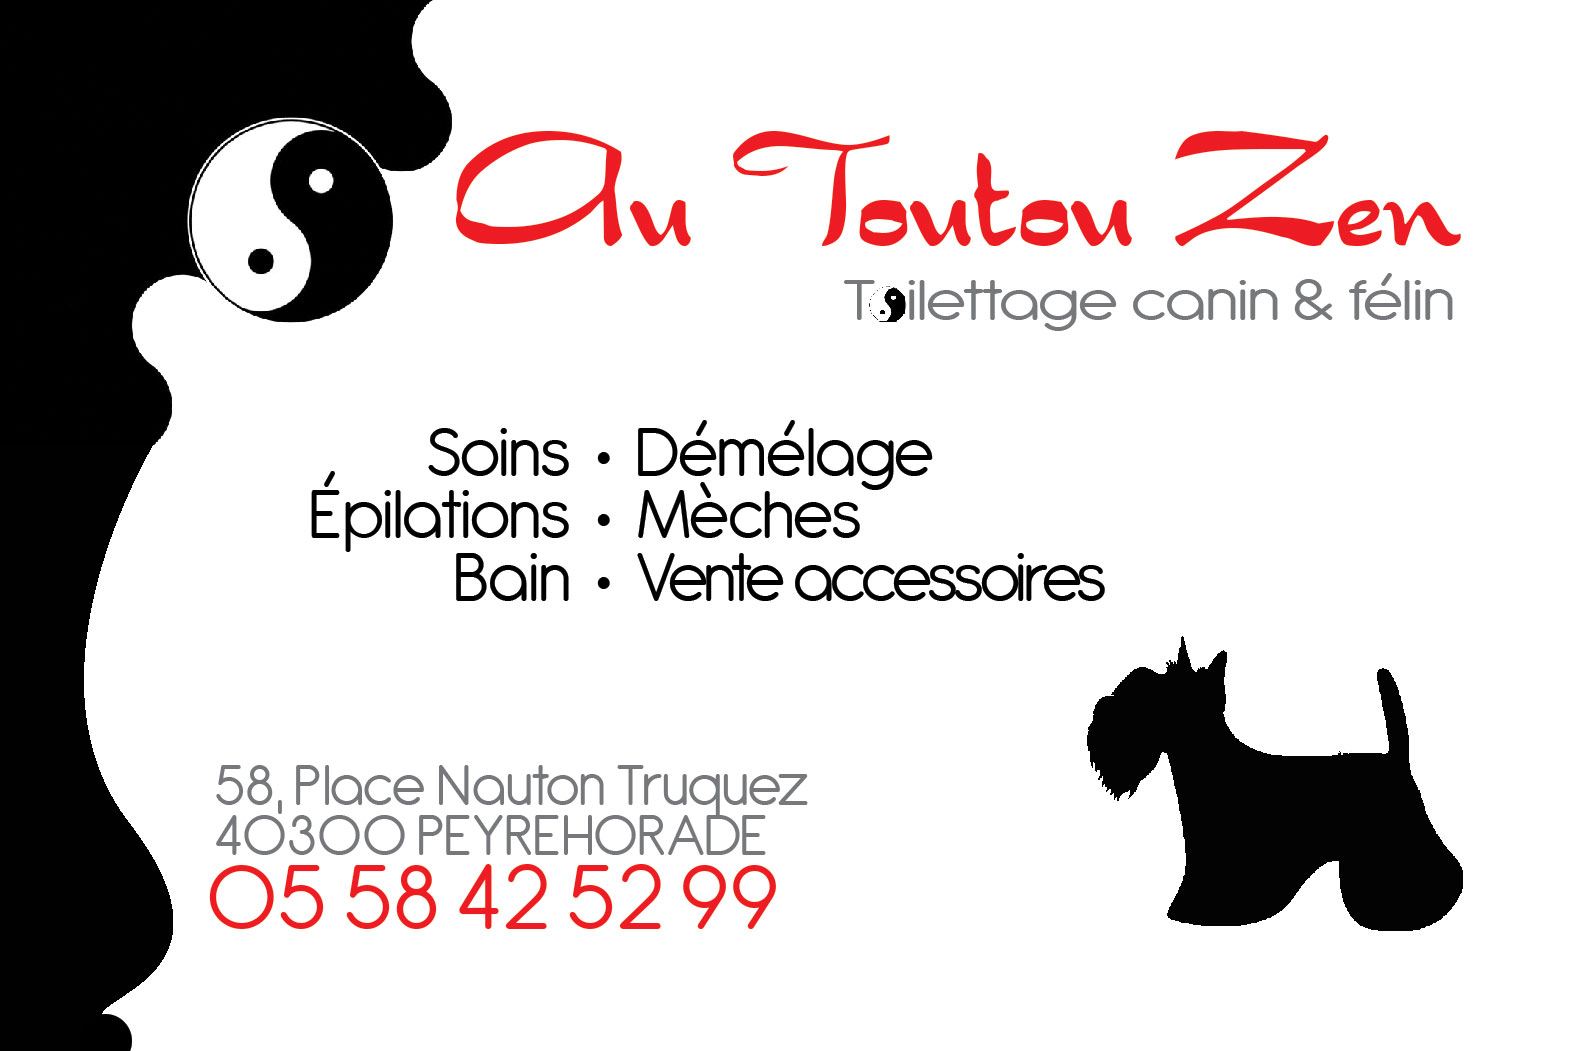 Boutique de toilettage canin